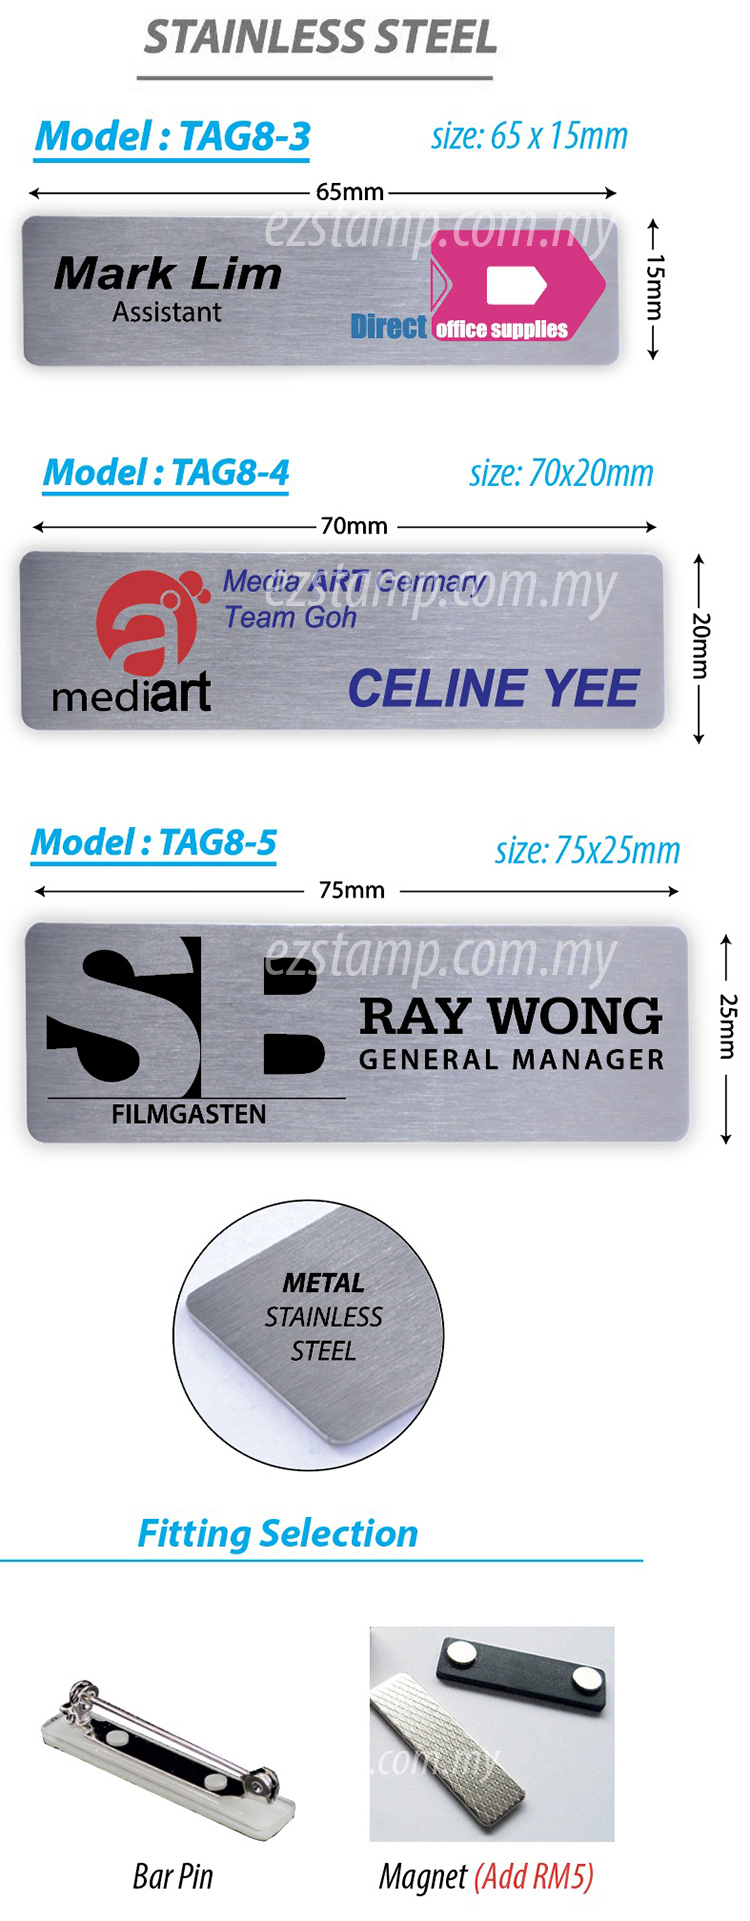 Stainless Steel SILVER Name Tag - Model 8-3